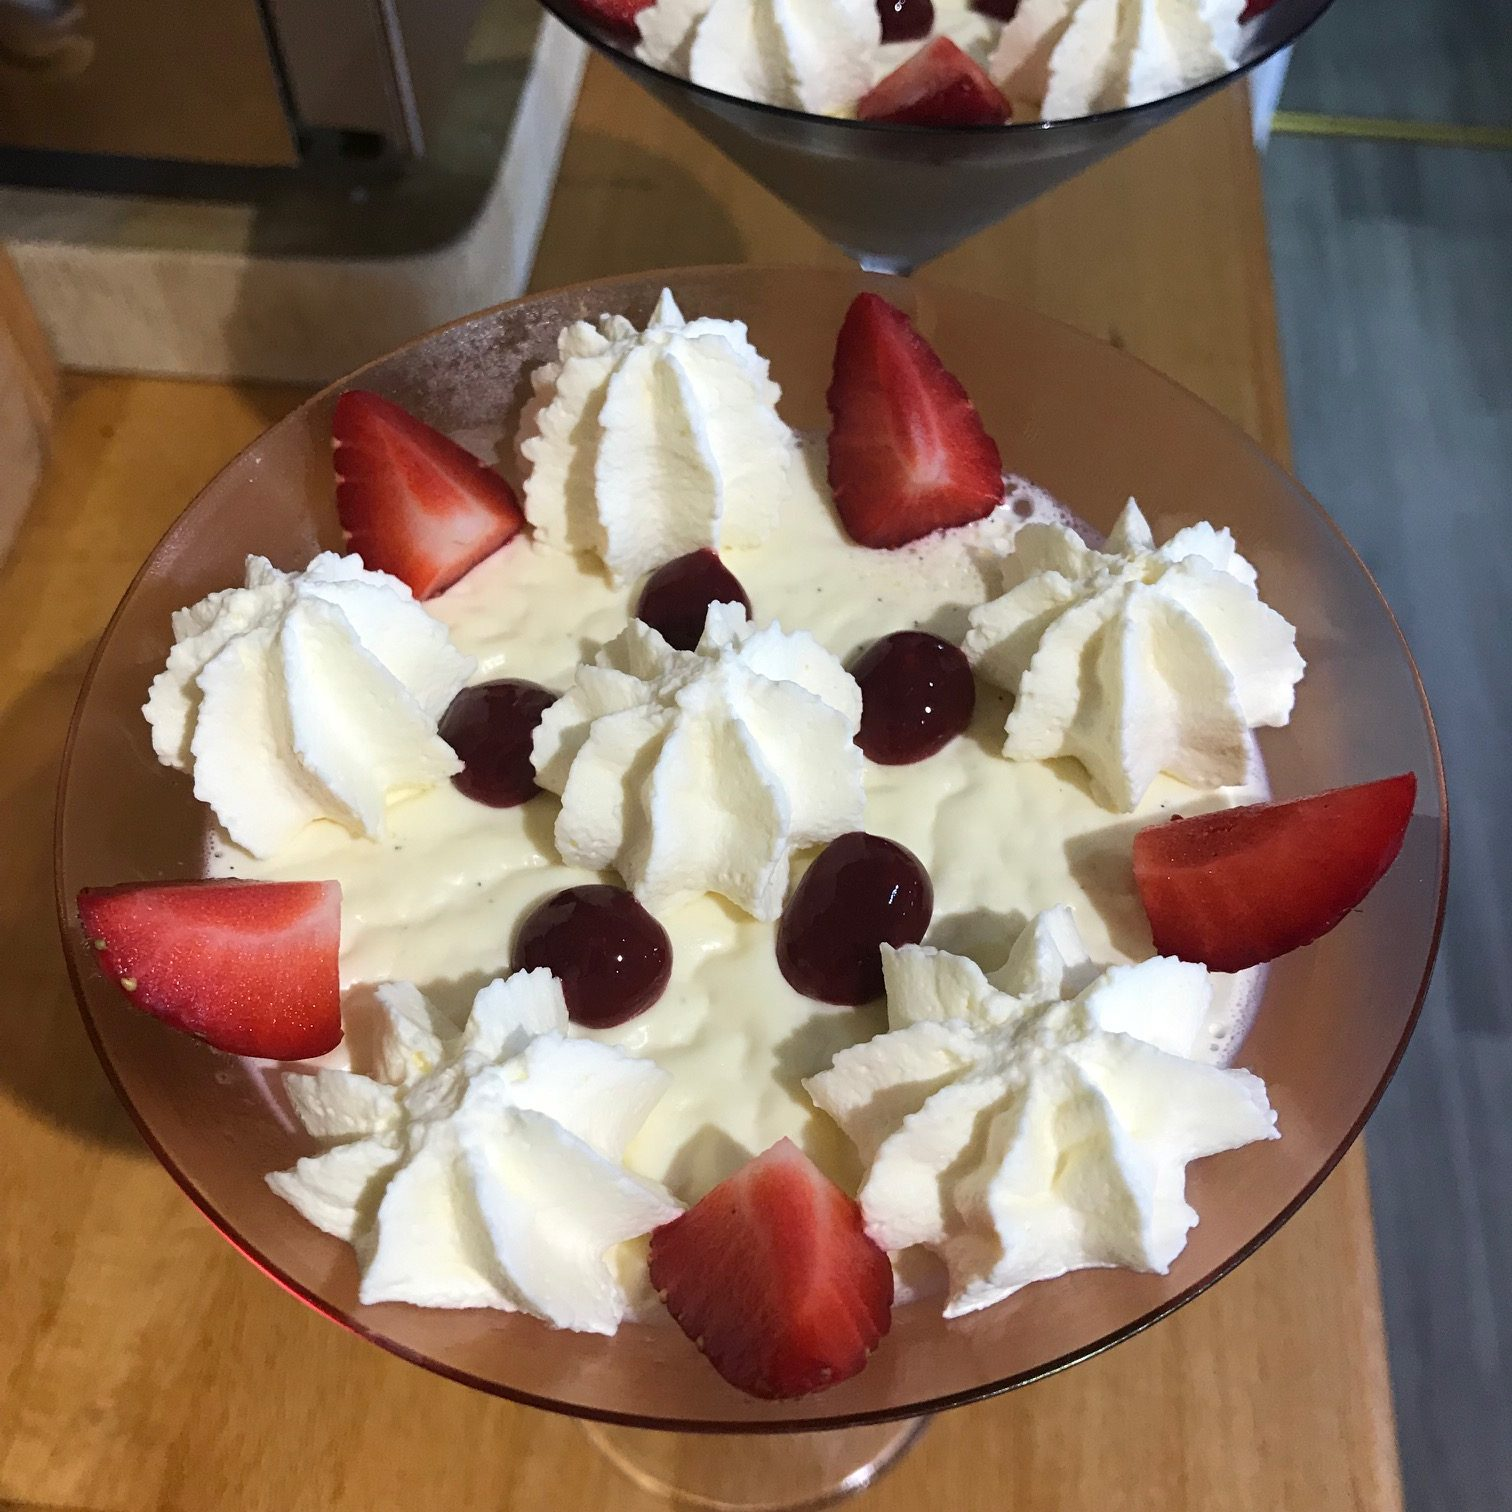 20190816 - Panna Cotta with Strawberries and Cream